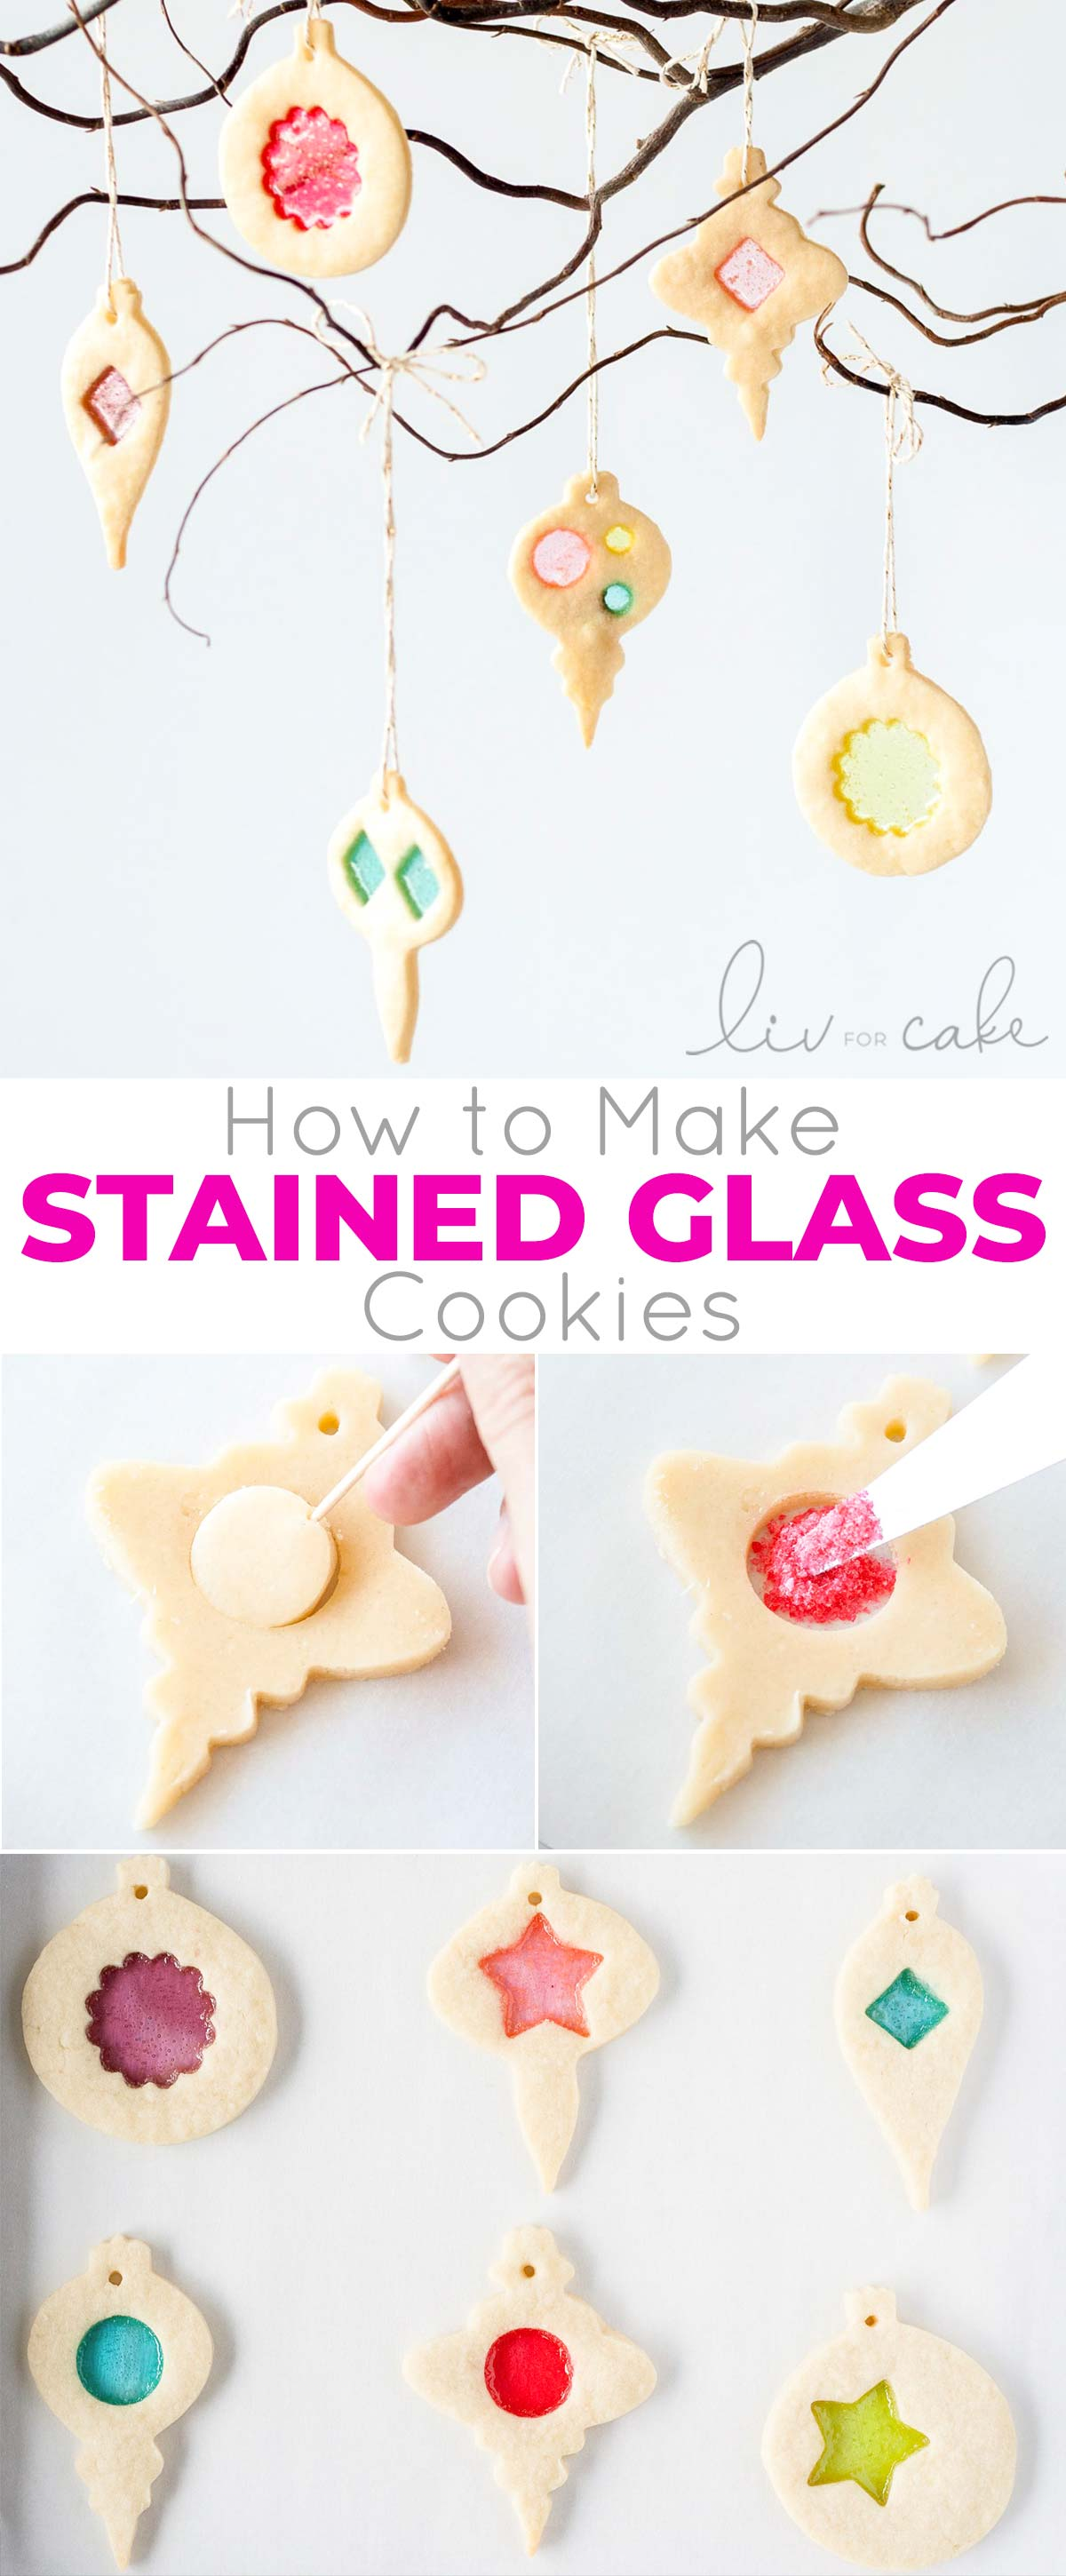 Stained Glass Cookies Photo Collage